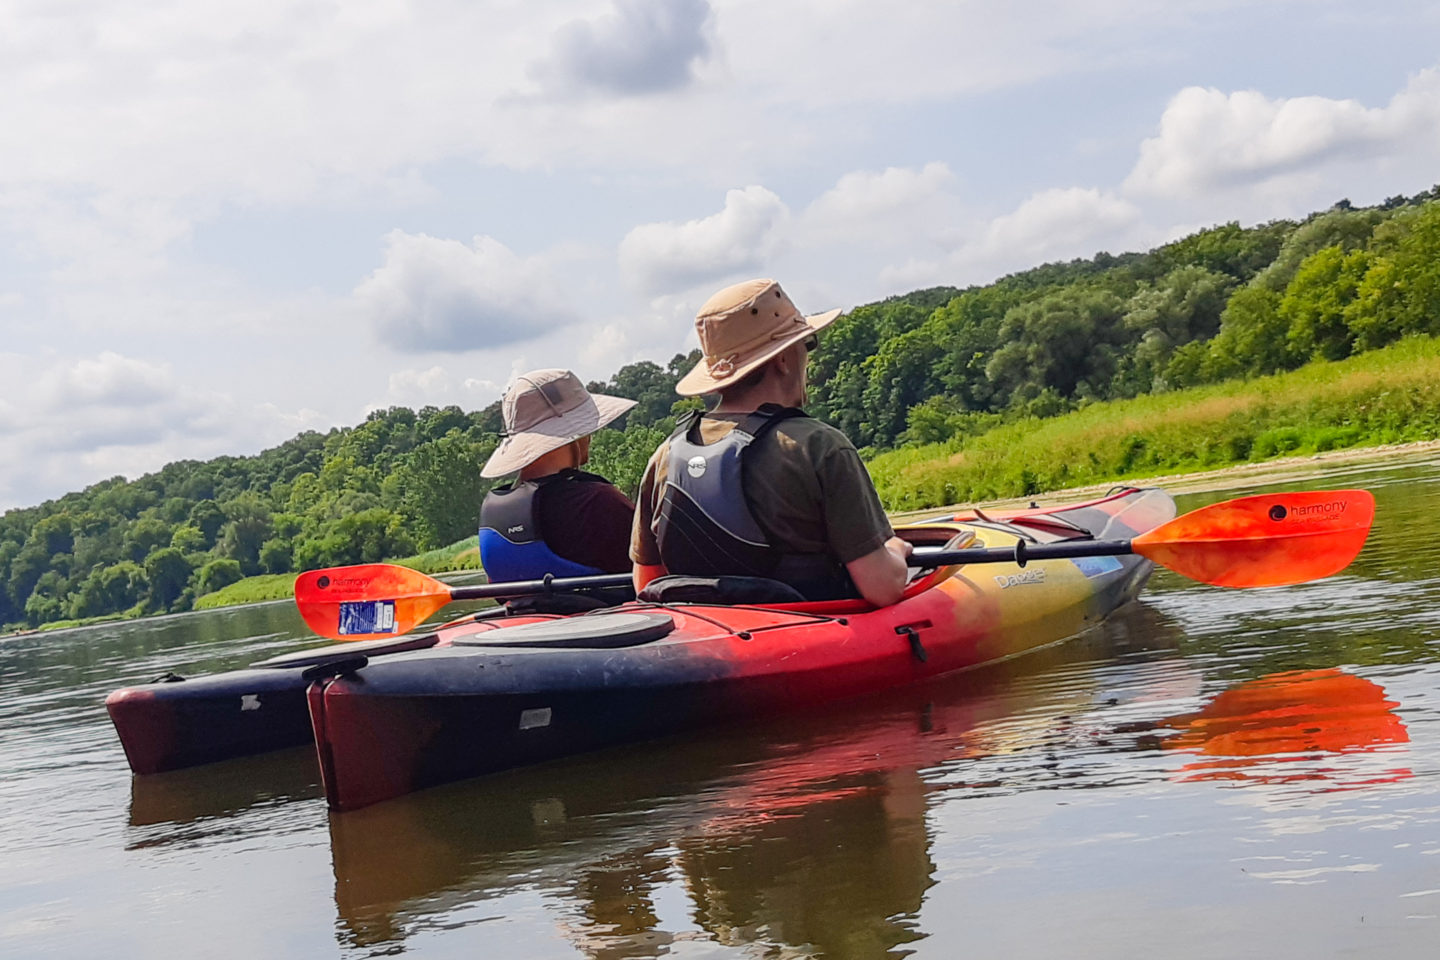 Kayak Trips on the Grand River